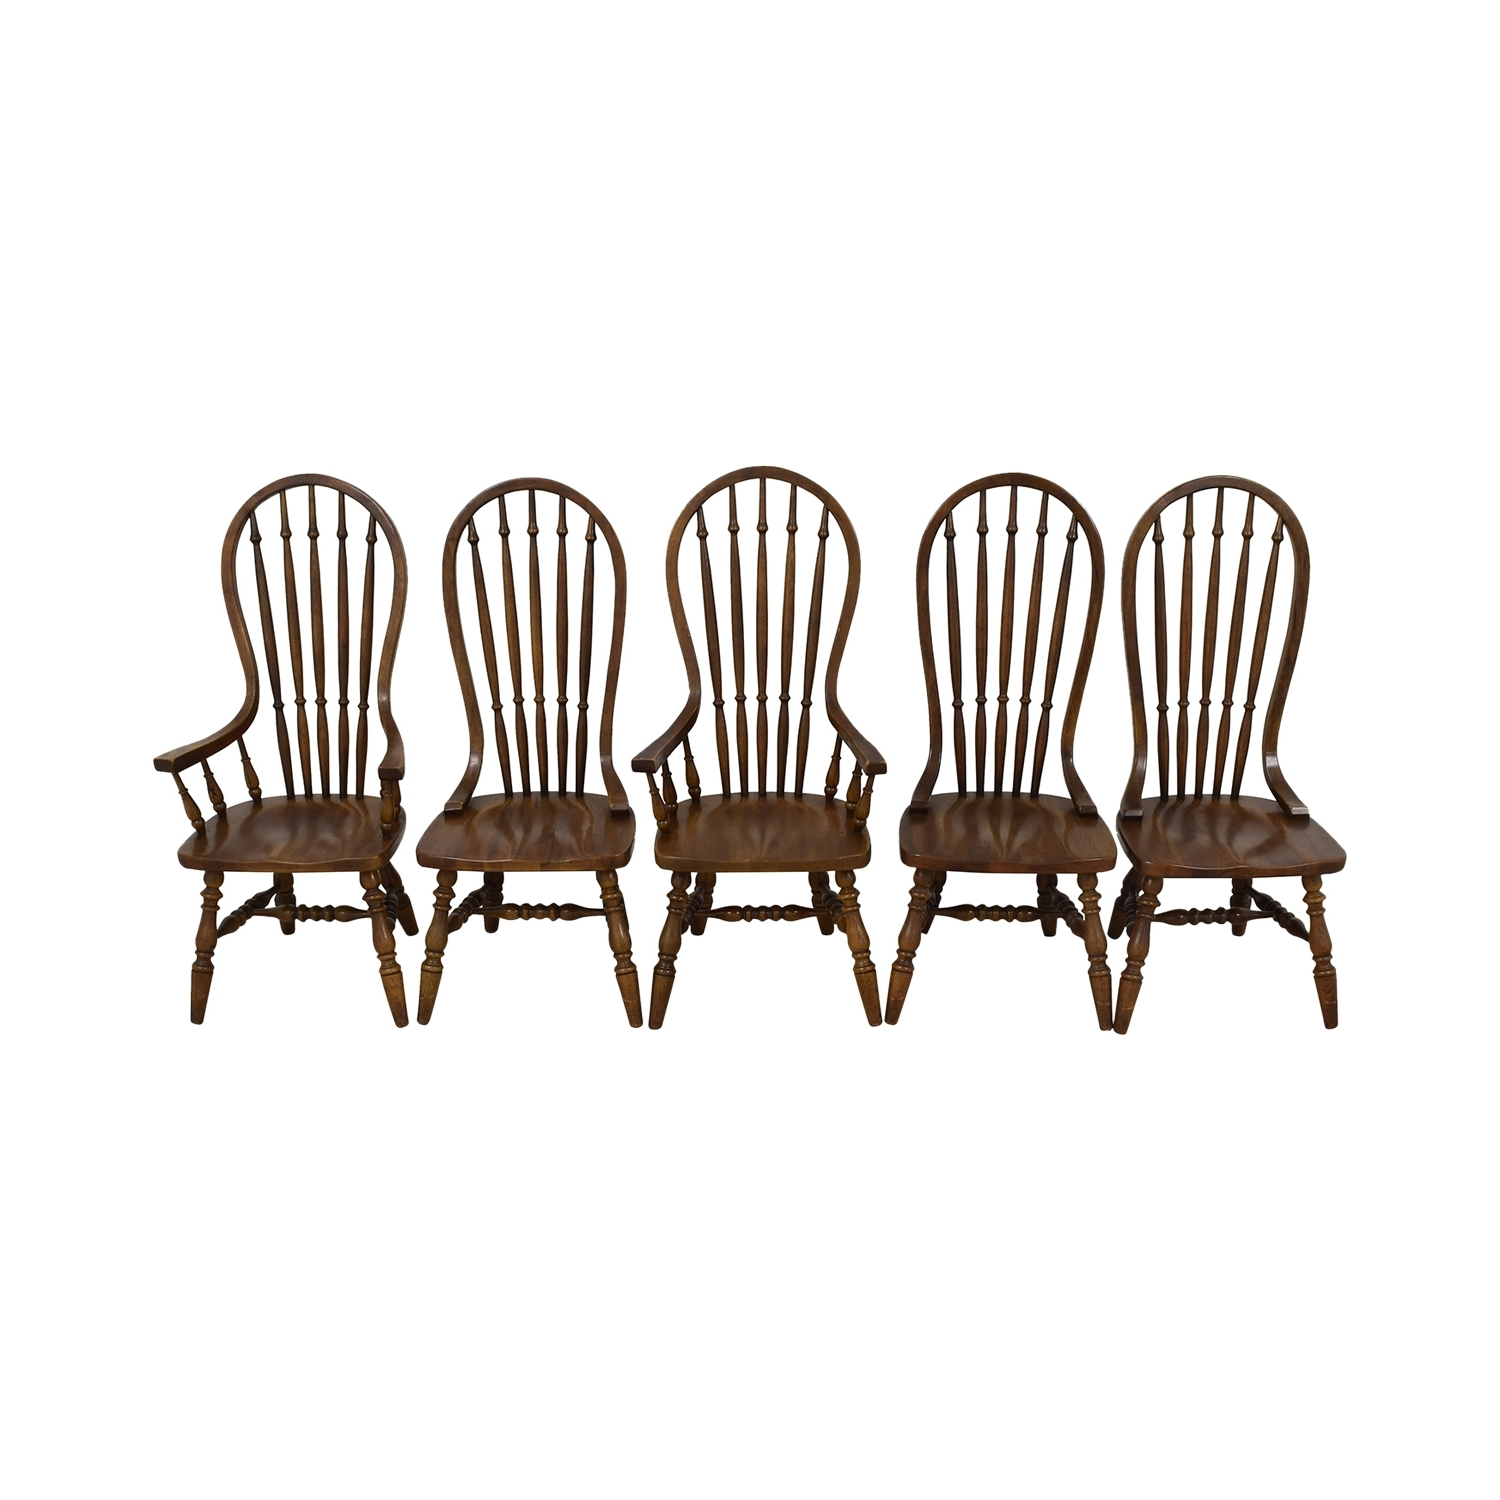 [%90% Off – Antique Oak Spindle Dining Chairs / Chairs Throughout Most Recent Second Hand Oak Dining Chairs|Second Hand Oak Dining Chairs Intended For Latest 90% Off – Antique Oak Spindle Dining Chairs / Chairs|Fashionable Second Hand Oak Dining Chairs With Regard To 90% Off – Antique Oak Spindle Dining Chairs / Chairs|Fashionable 90% Off – Antique Oak Spindle Dining Chairs / Chairs In Second Hand Oak Dining Chairs%] (View 15 of 25)